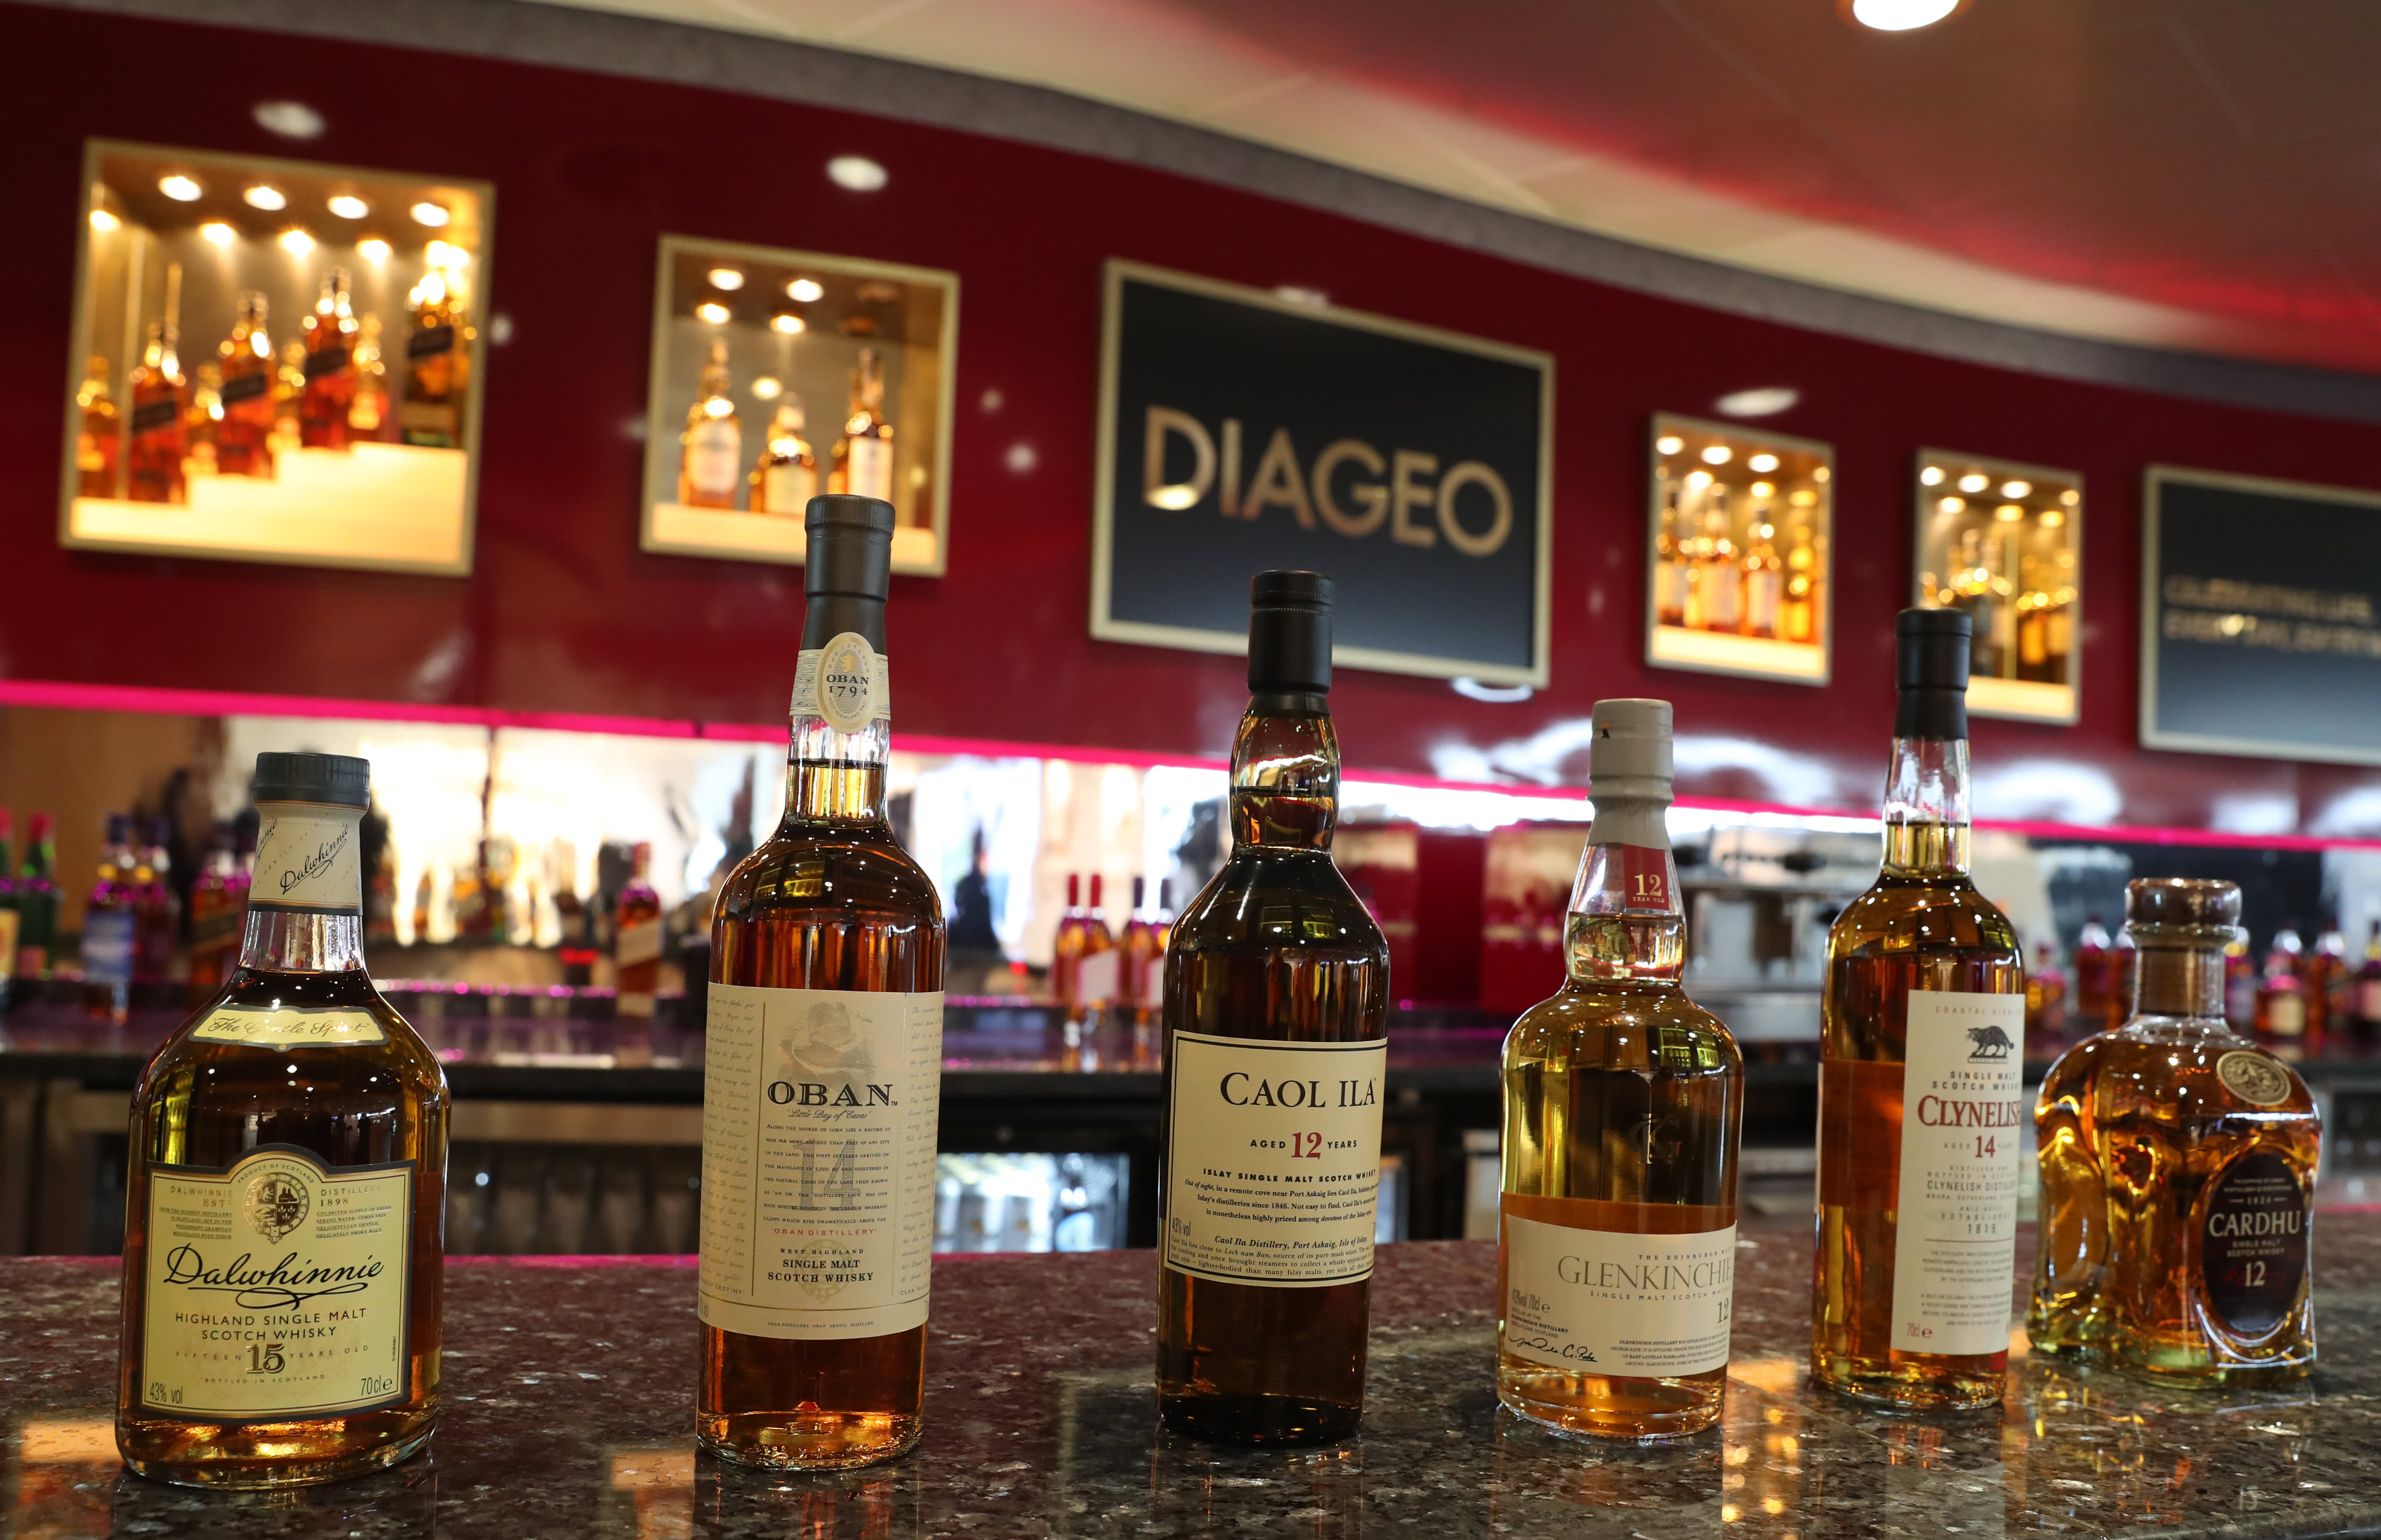 Diageo becomes first spirits company to sign sponsorship deal with NFL